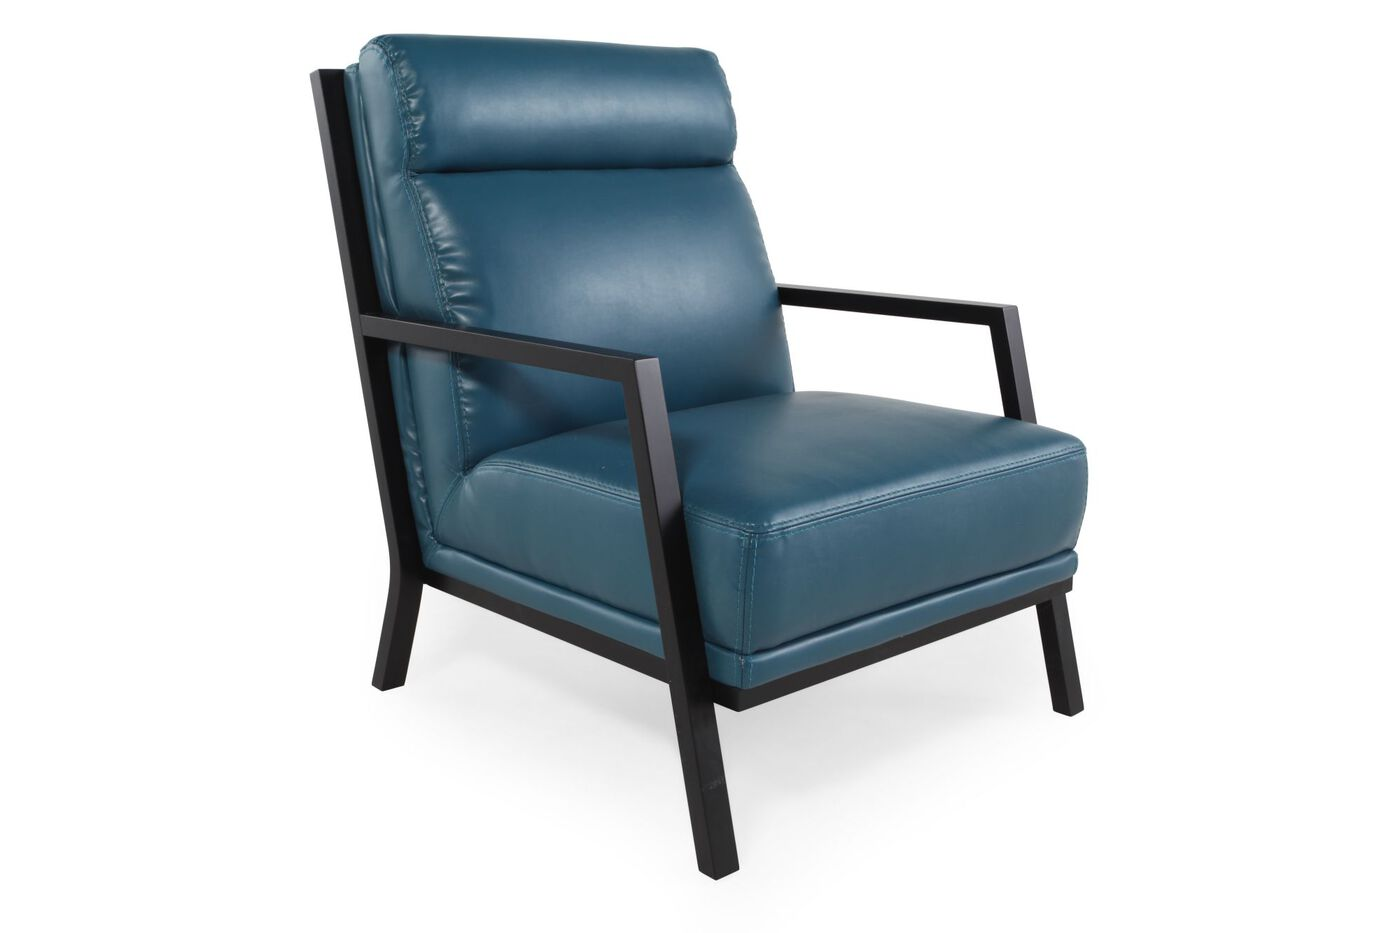 Boulevard Blue Leather Accent Chair   Boulevard Blue Leather Accent Chair. Boulevard Blue Leather Accent Chair   Mathis Brothers Furniture